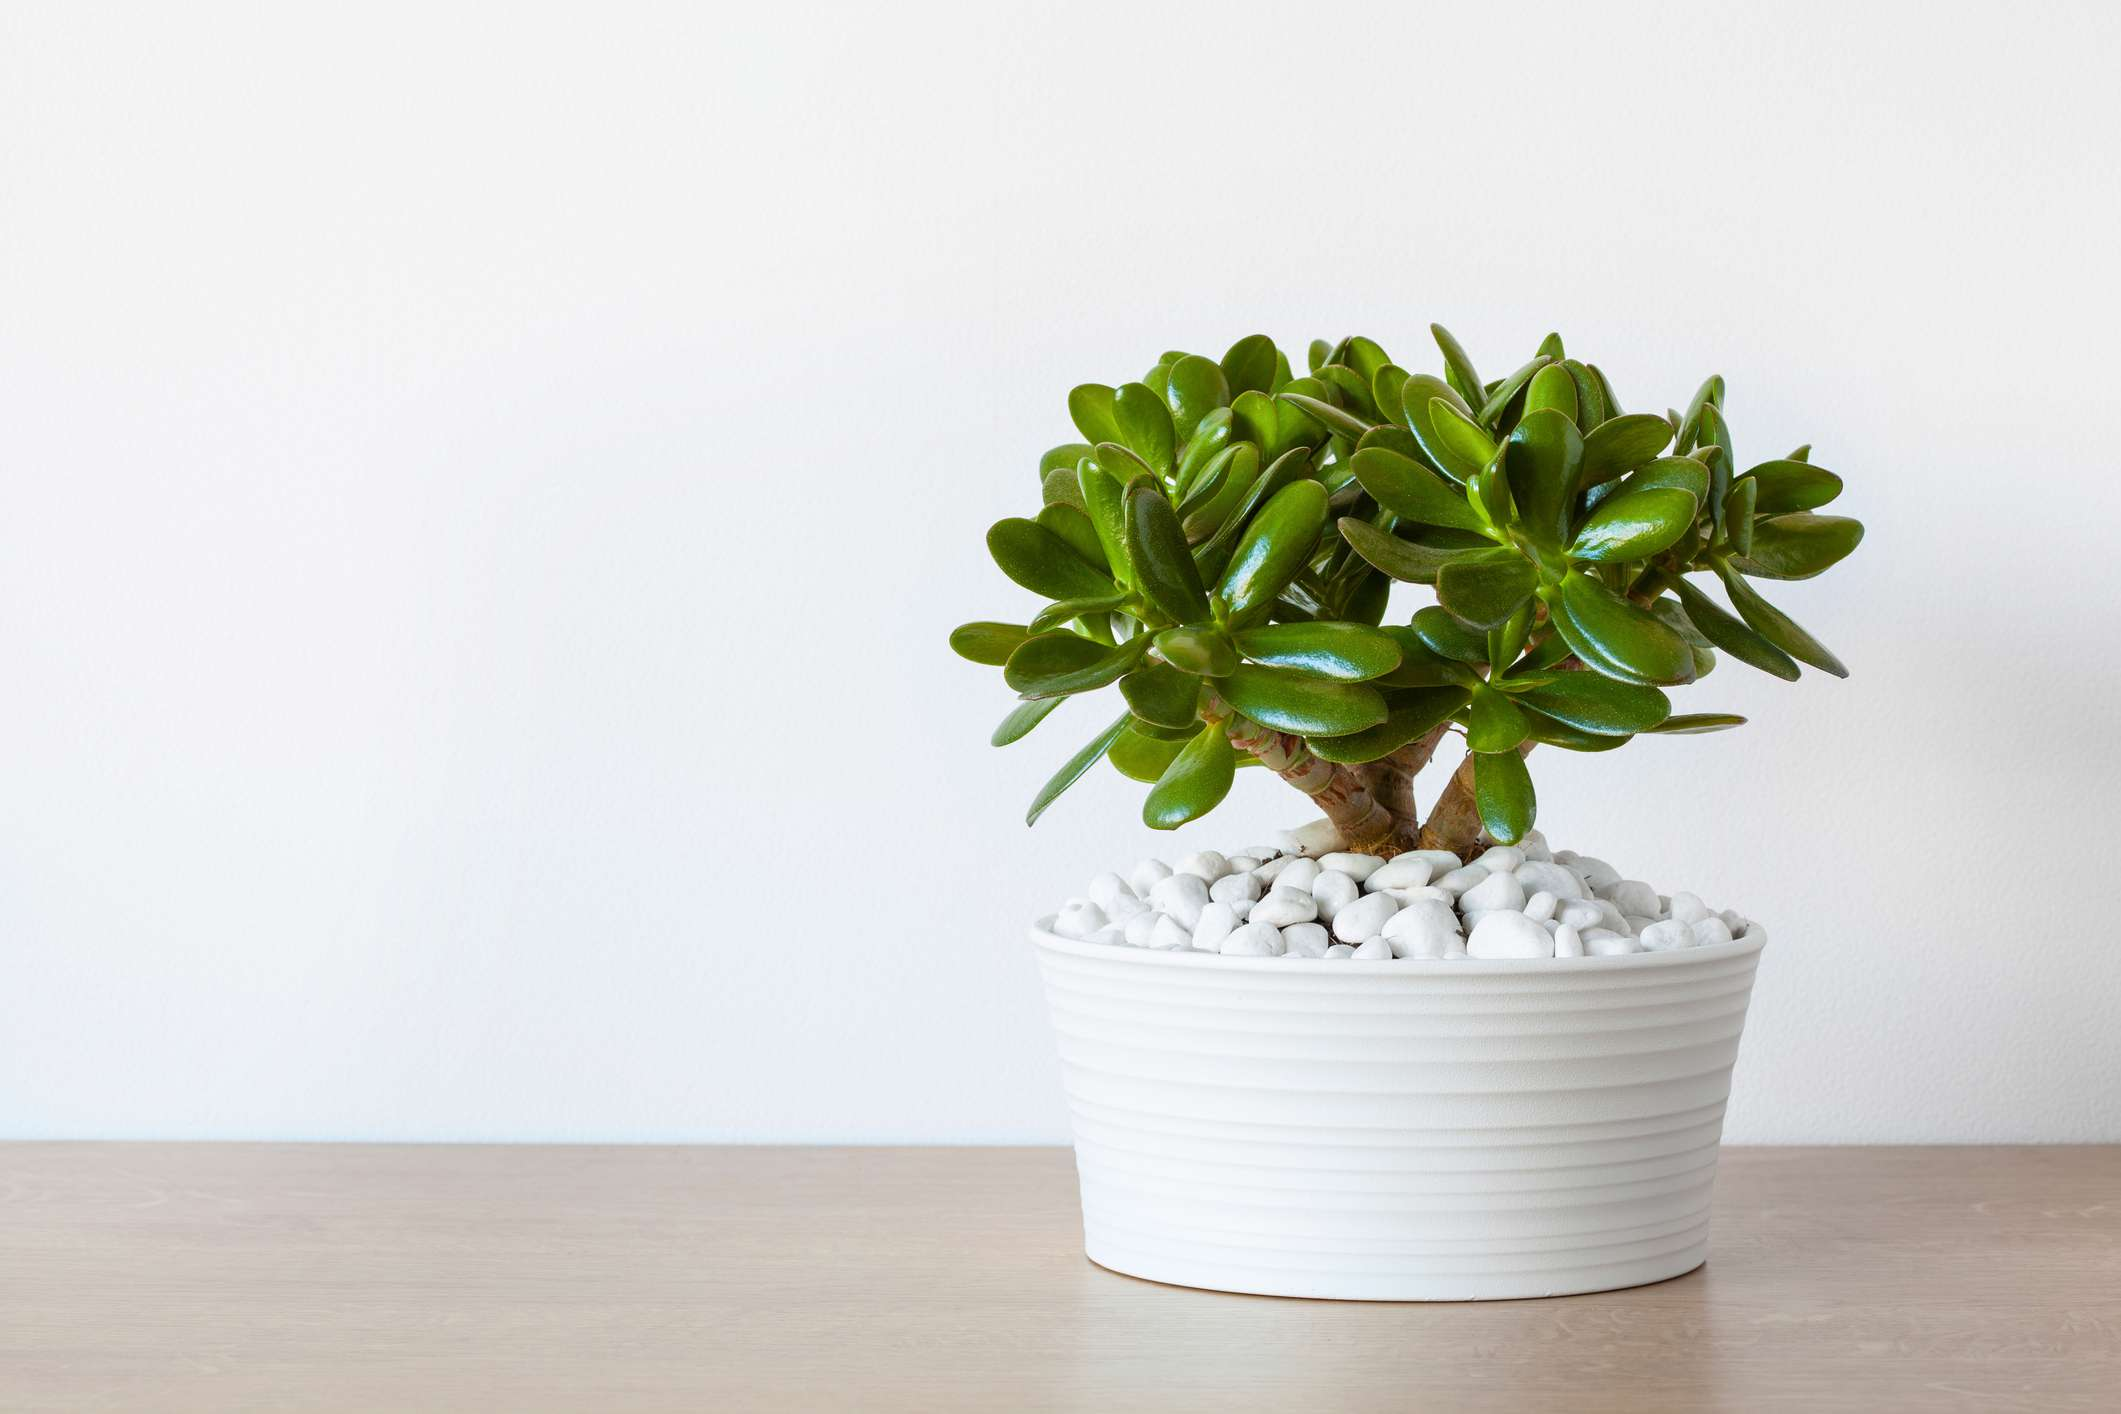 How to Care for Your Jade Plant